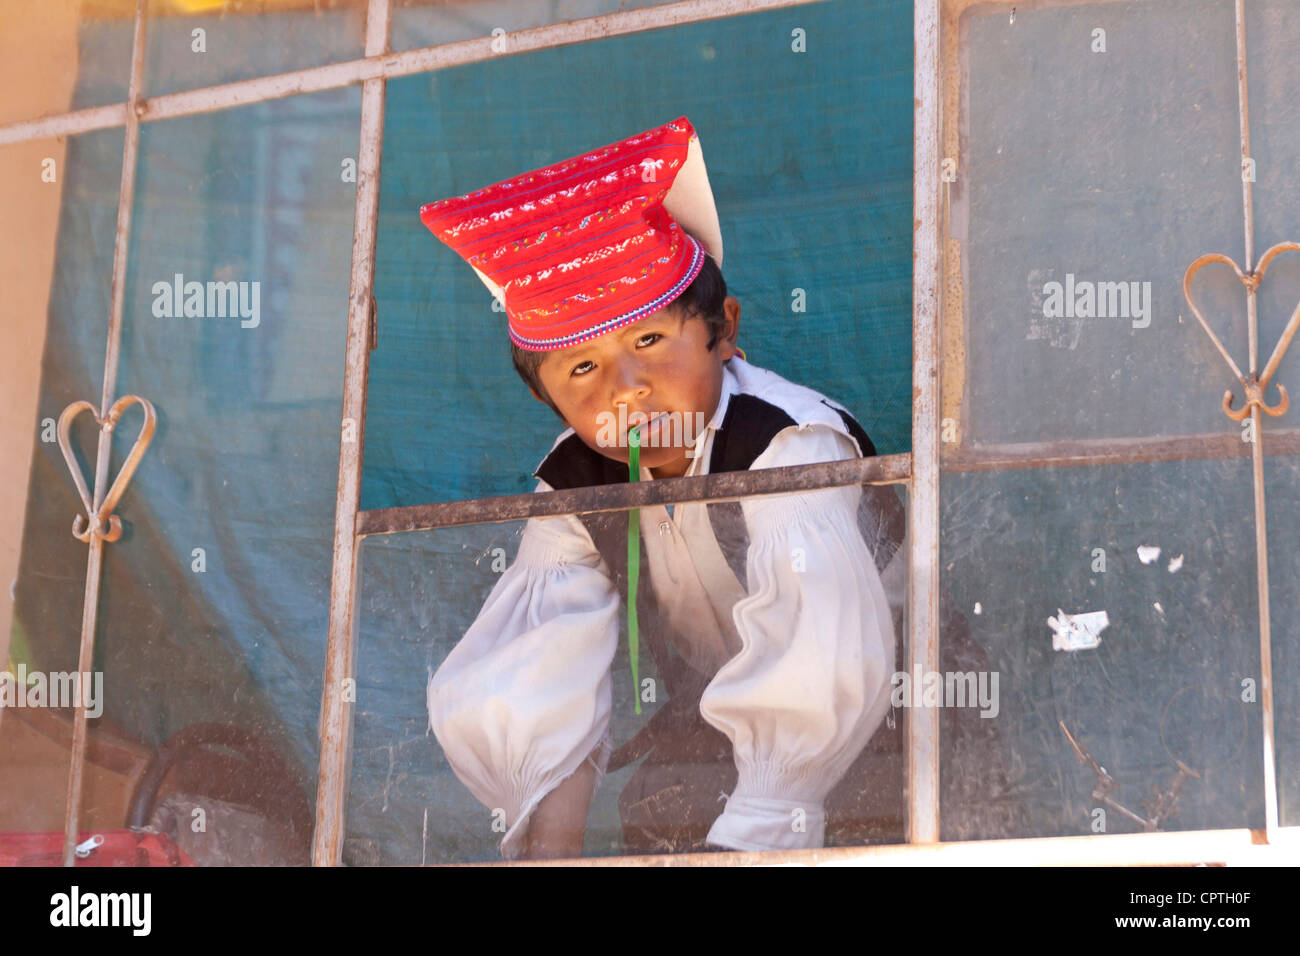 Lake Titikaka, Taquile island, Peru, child looking out of the window in celebrational attire - Stock Image